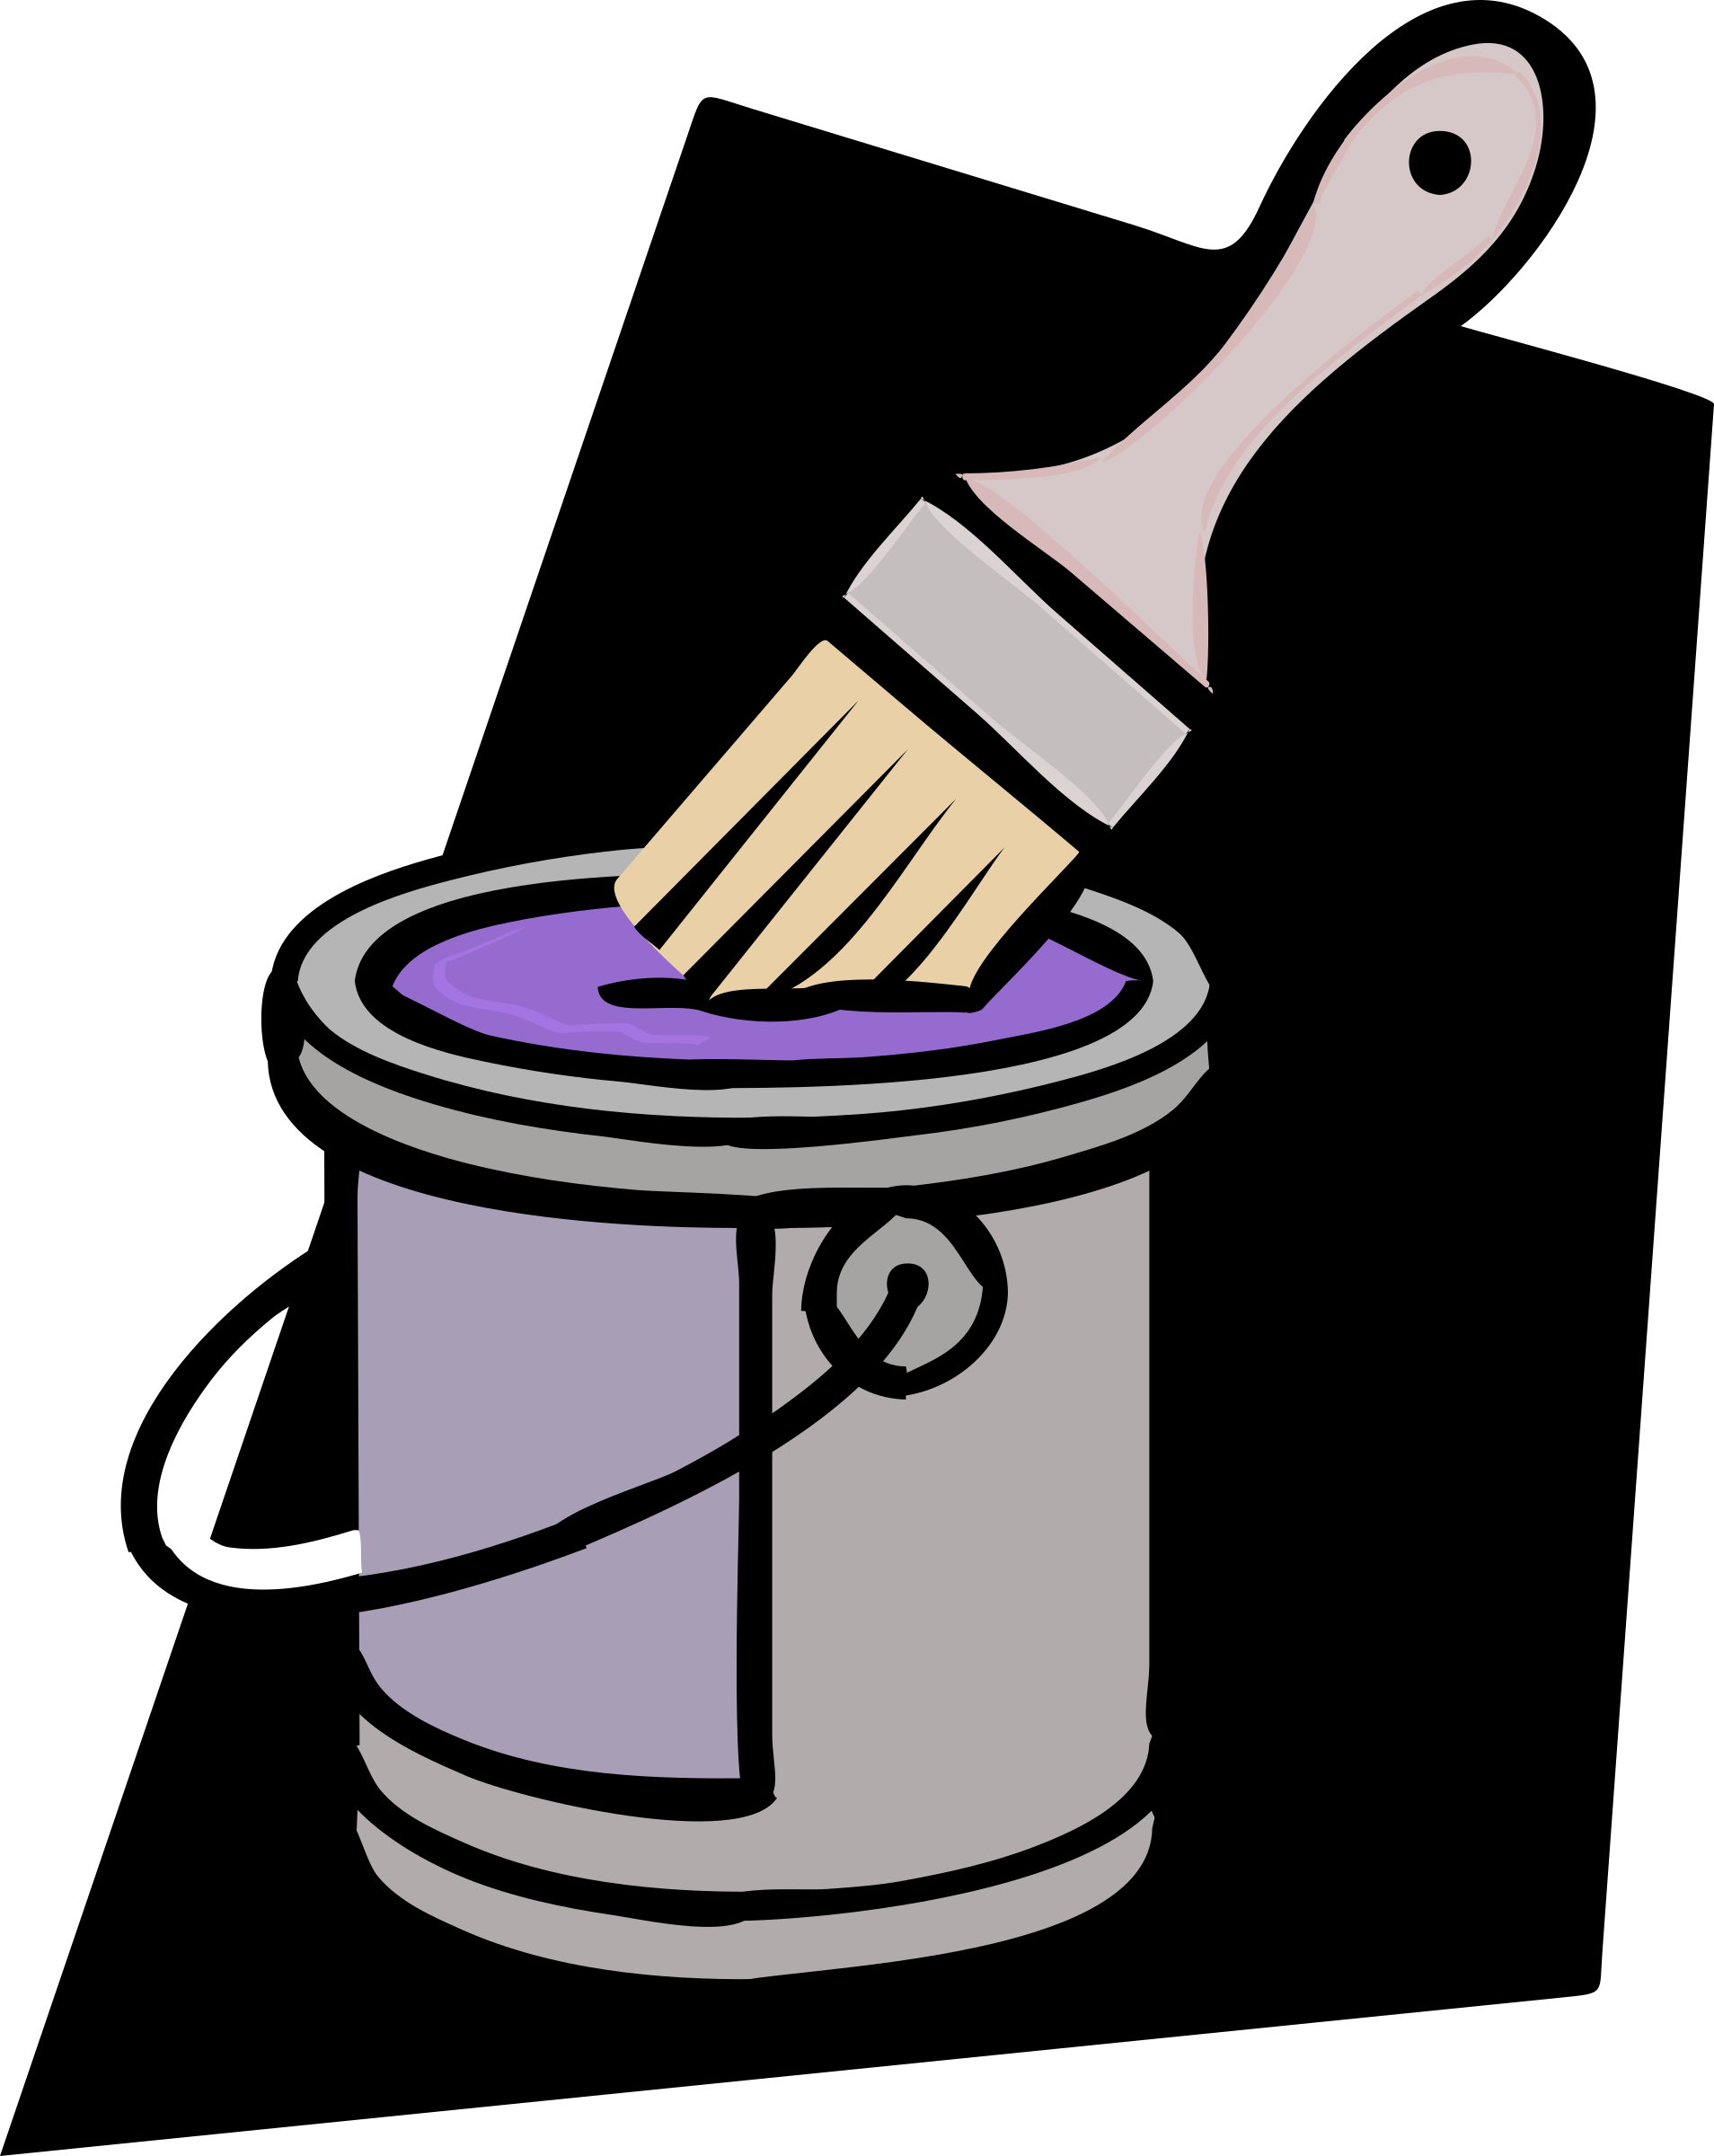 Purple Paint Can - Remix by j4p4n